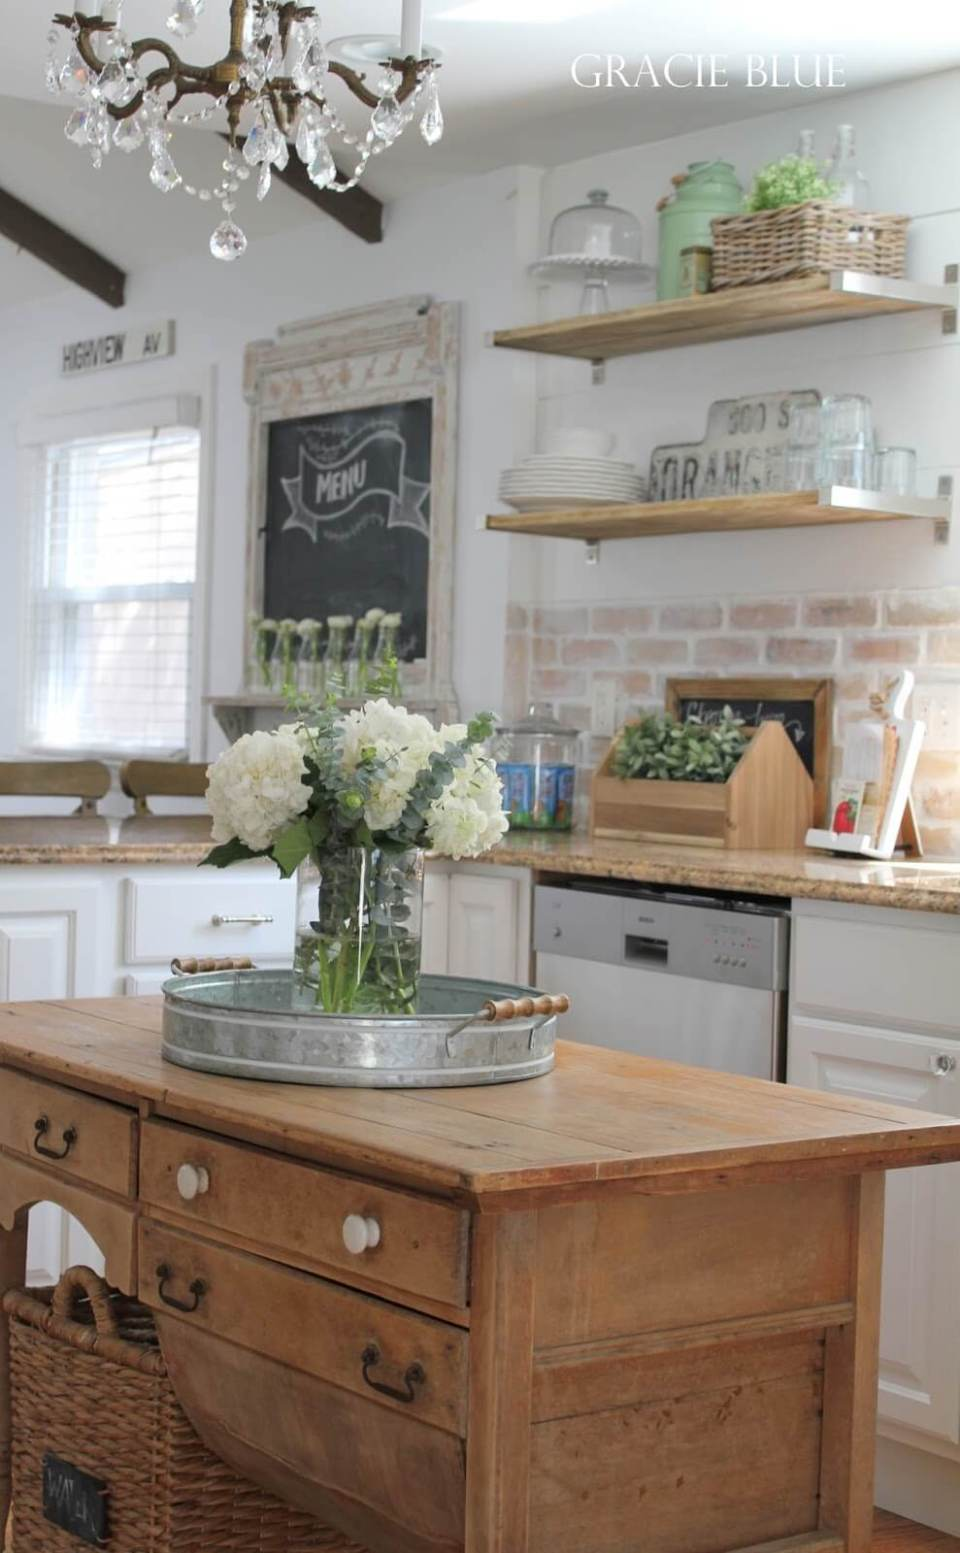 Farmhouse Kitchen Island | Inspiring Farmhouse Kitchen Design & Decor Ideas